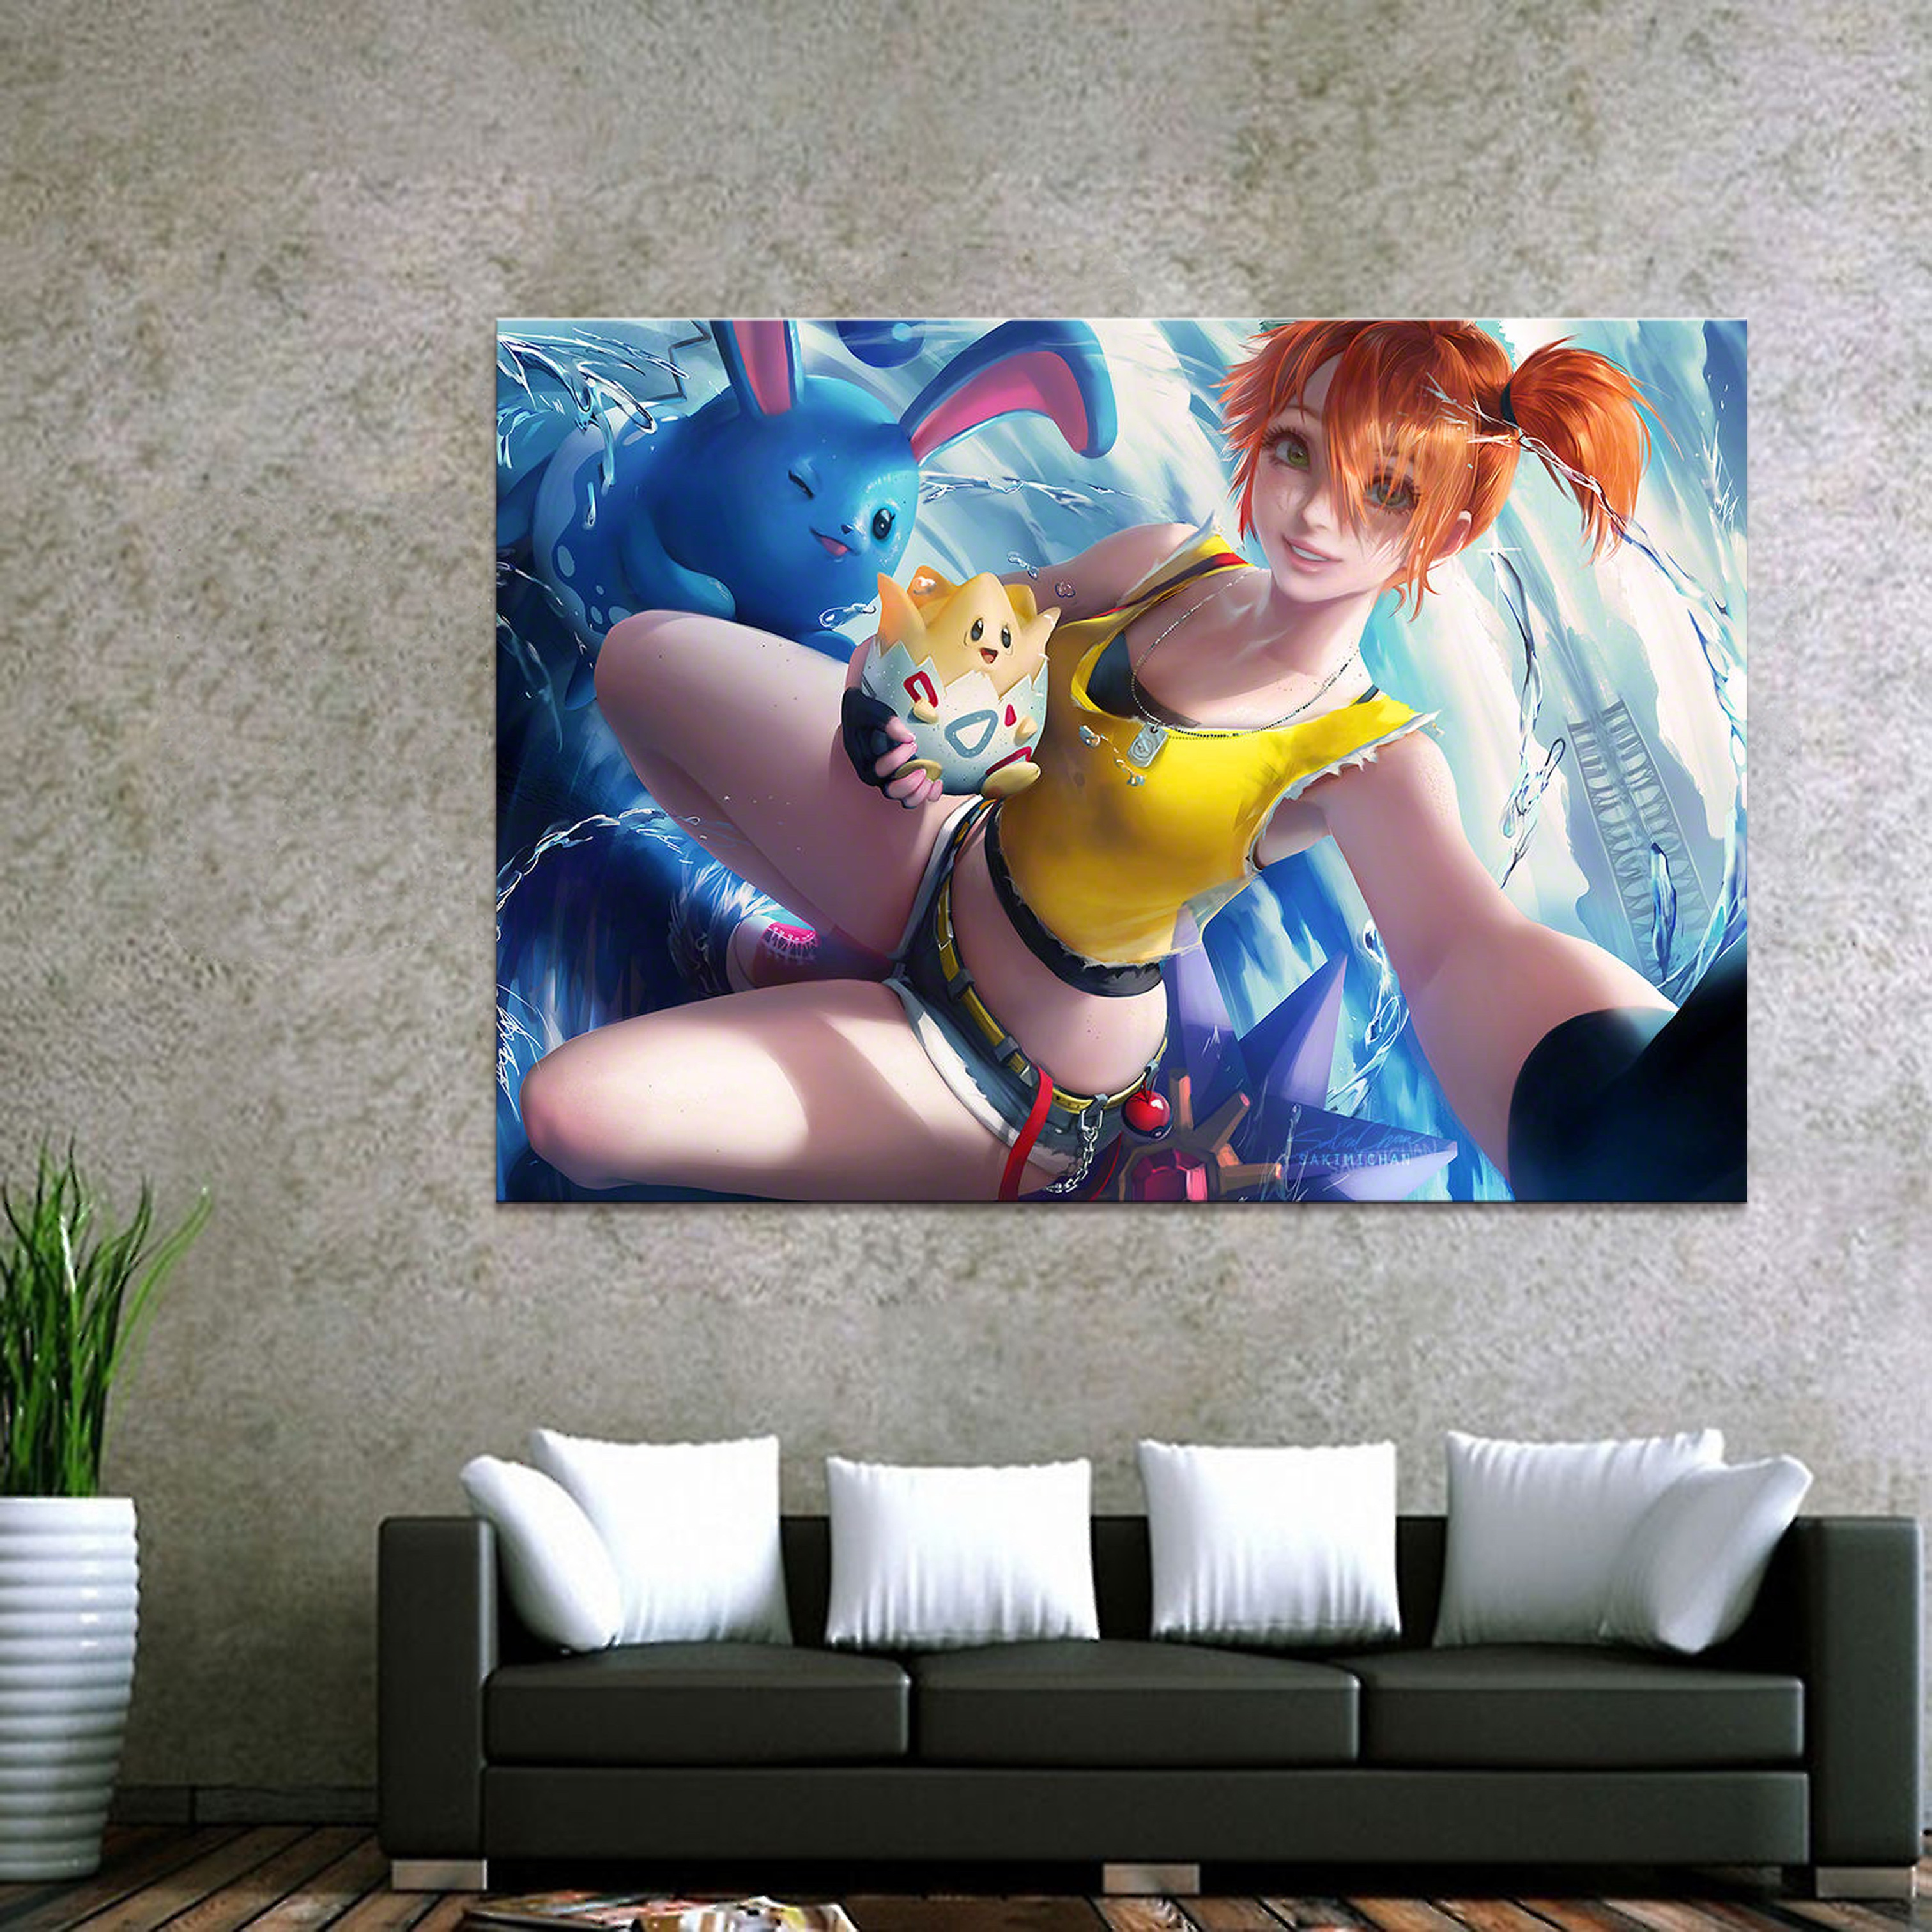 Home Decor Canvas Pokemon Game 1 Piece Anima'ti'o'n Sexy Girl Art Poster Prints Picture Wall Decoration Painting Wholesale 1